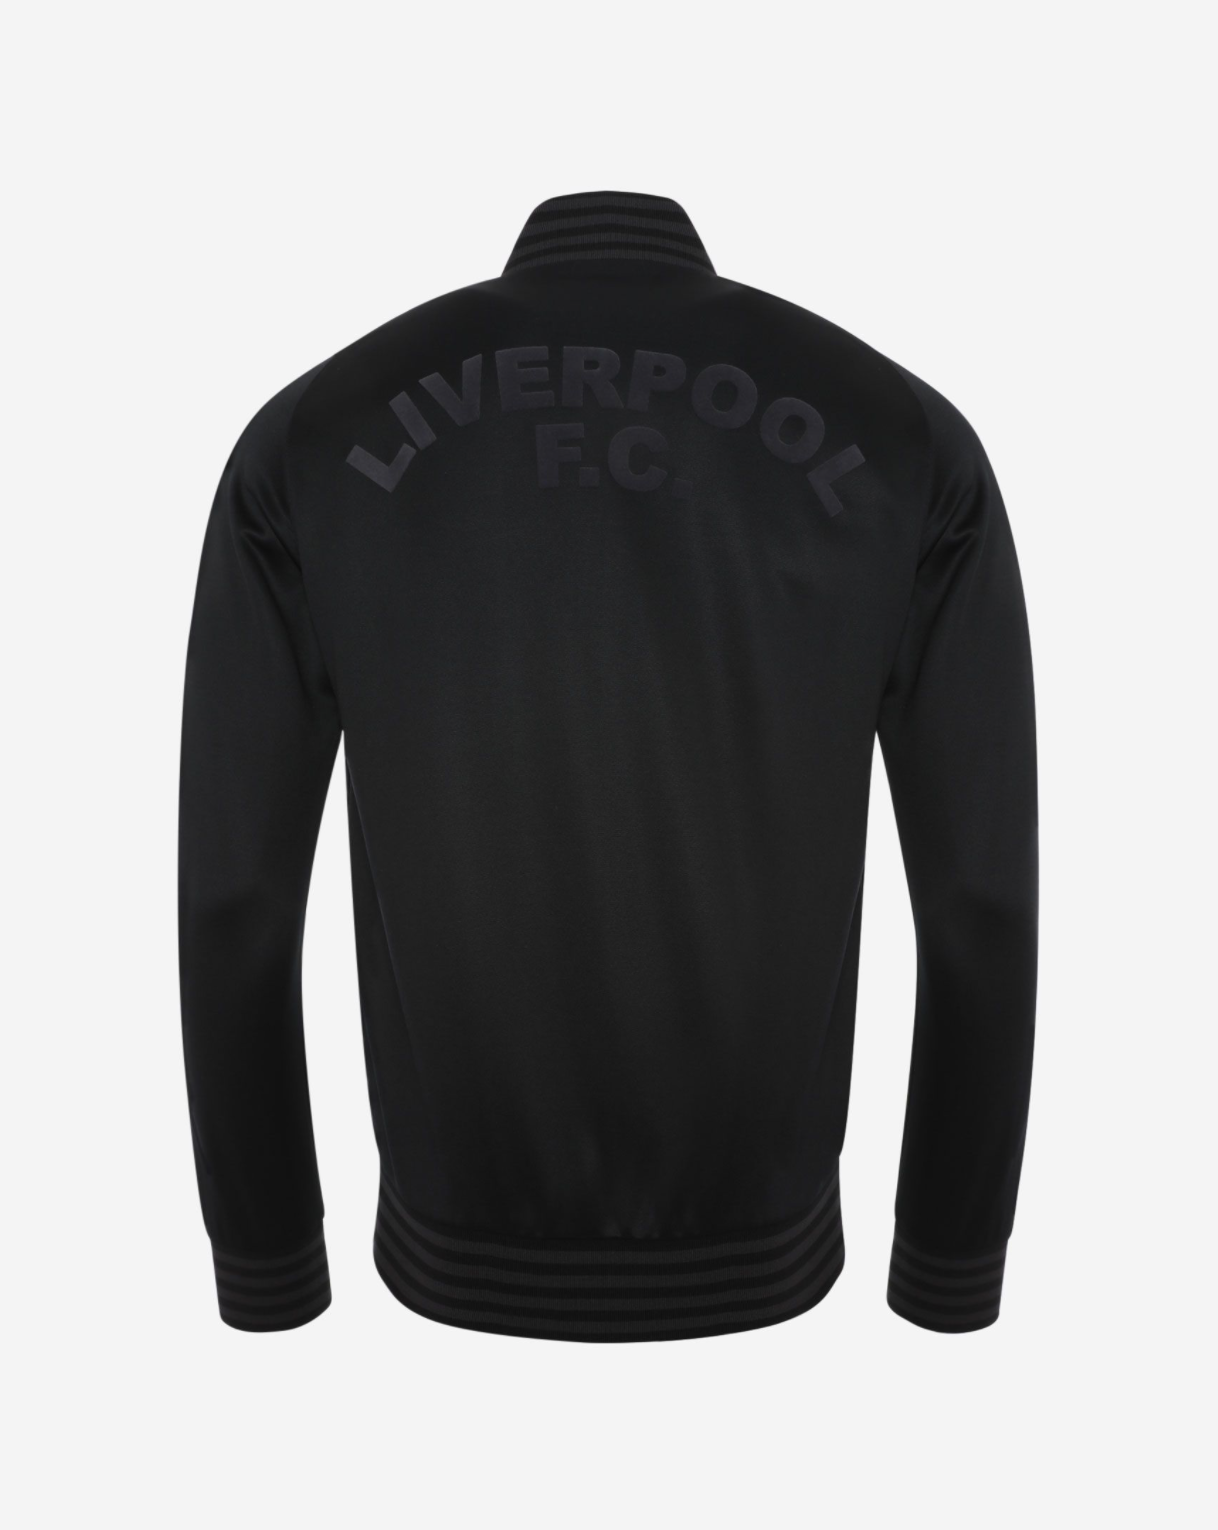 LFC Adults Special-Edition Shankly Jacket